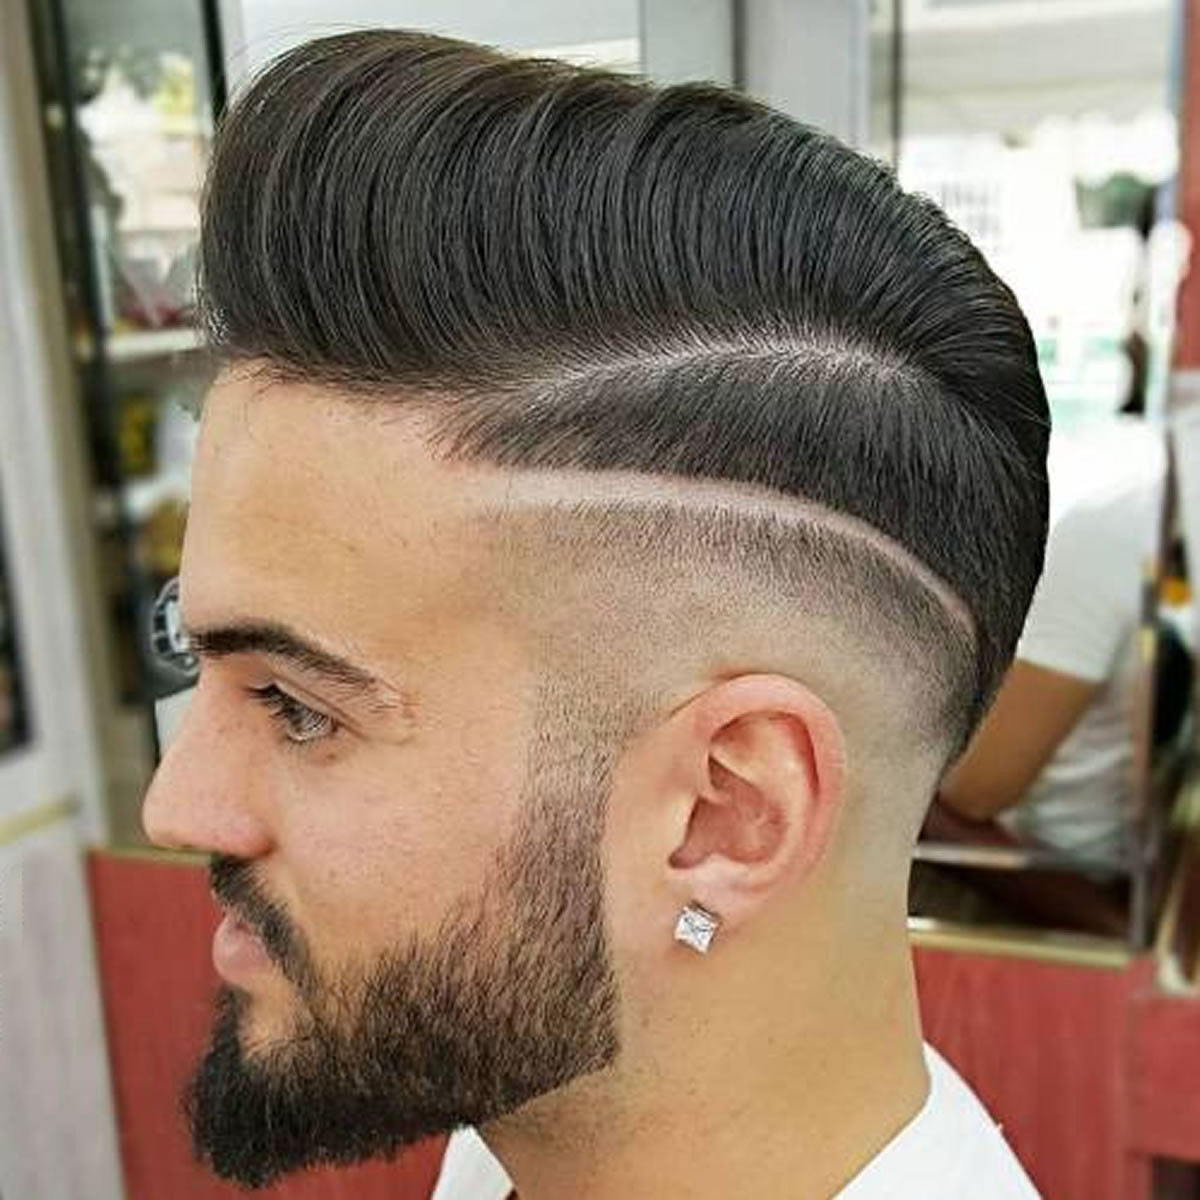 Best ideas about Popular Haircuts For Boys . Save or Pin 2018 Short Haircuts for Men – 17 Great Short Hair Ideas Now.